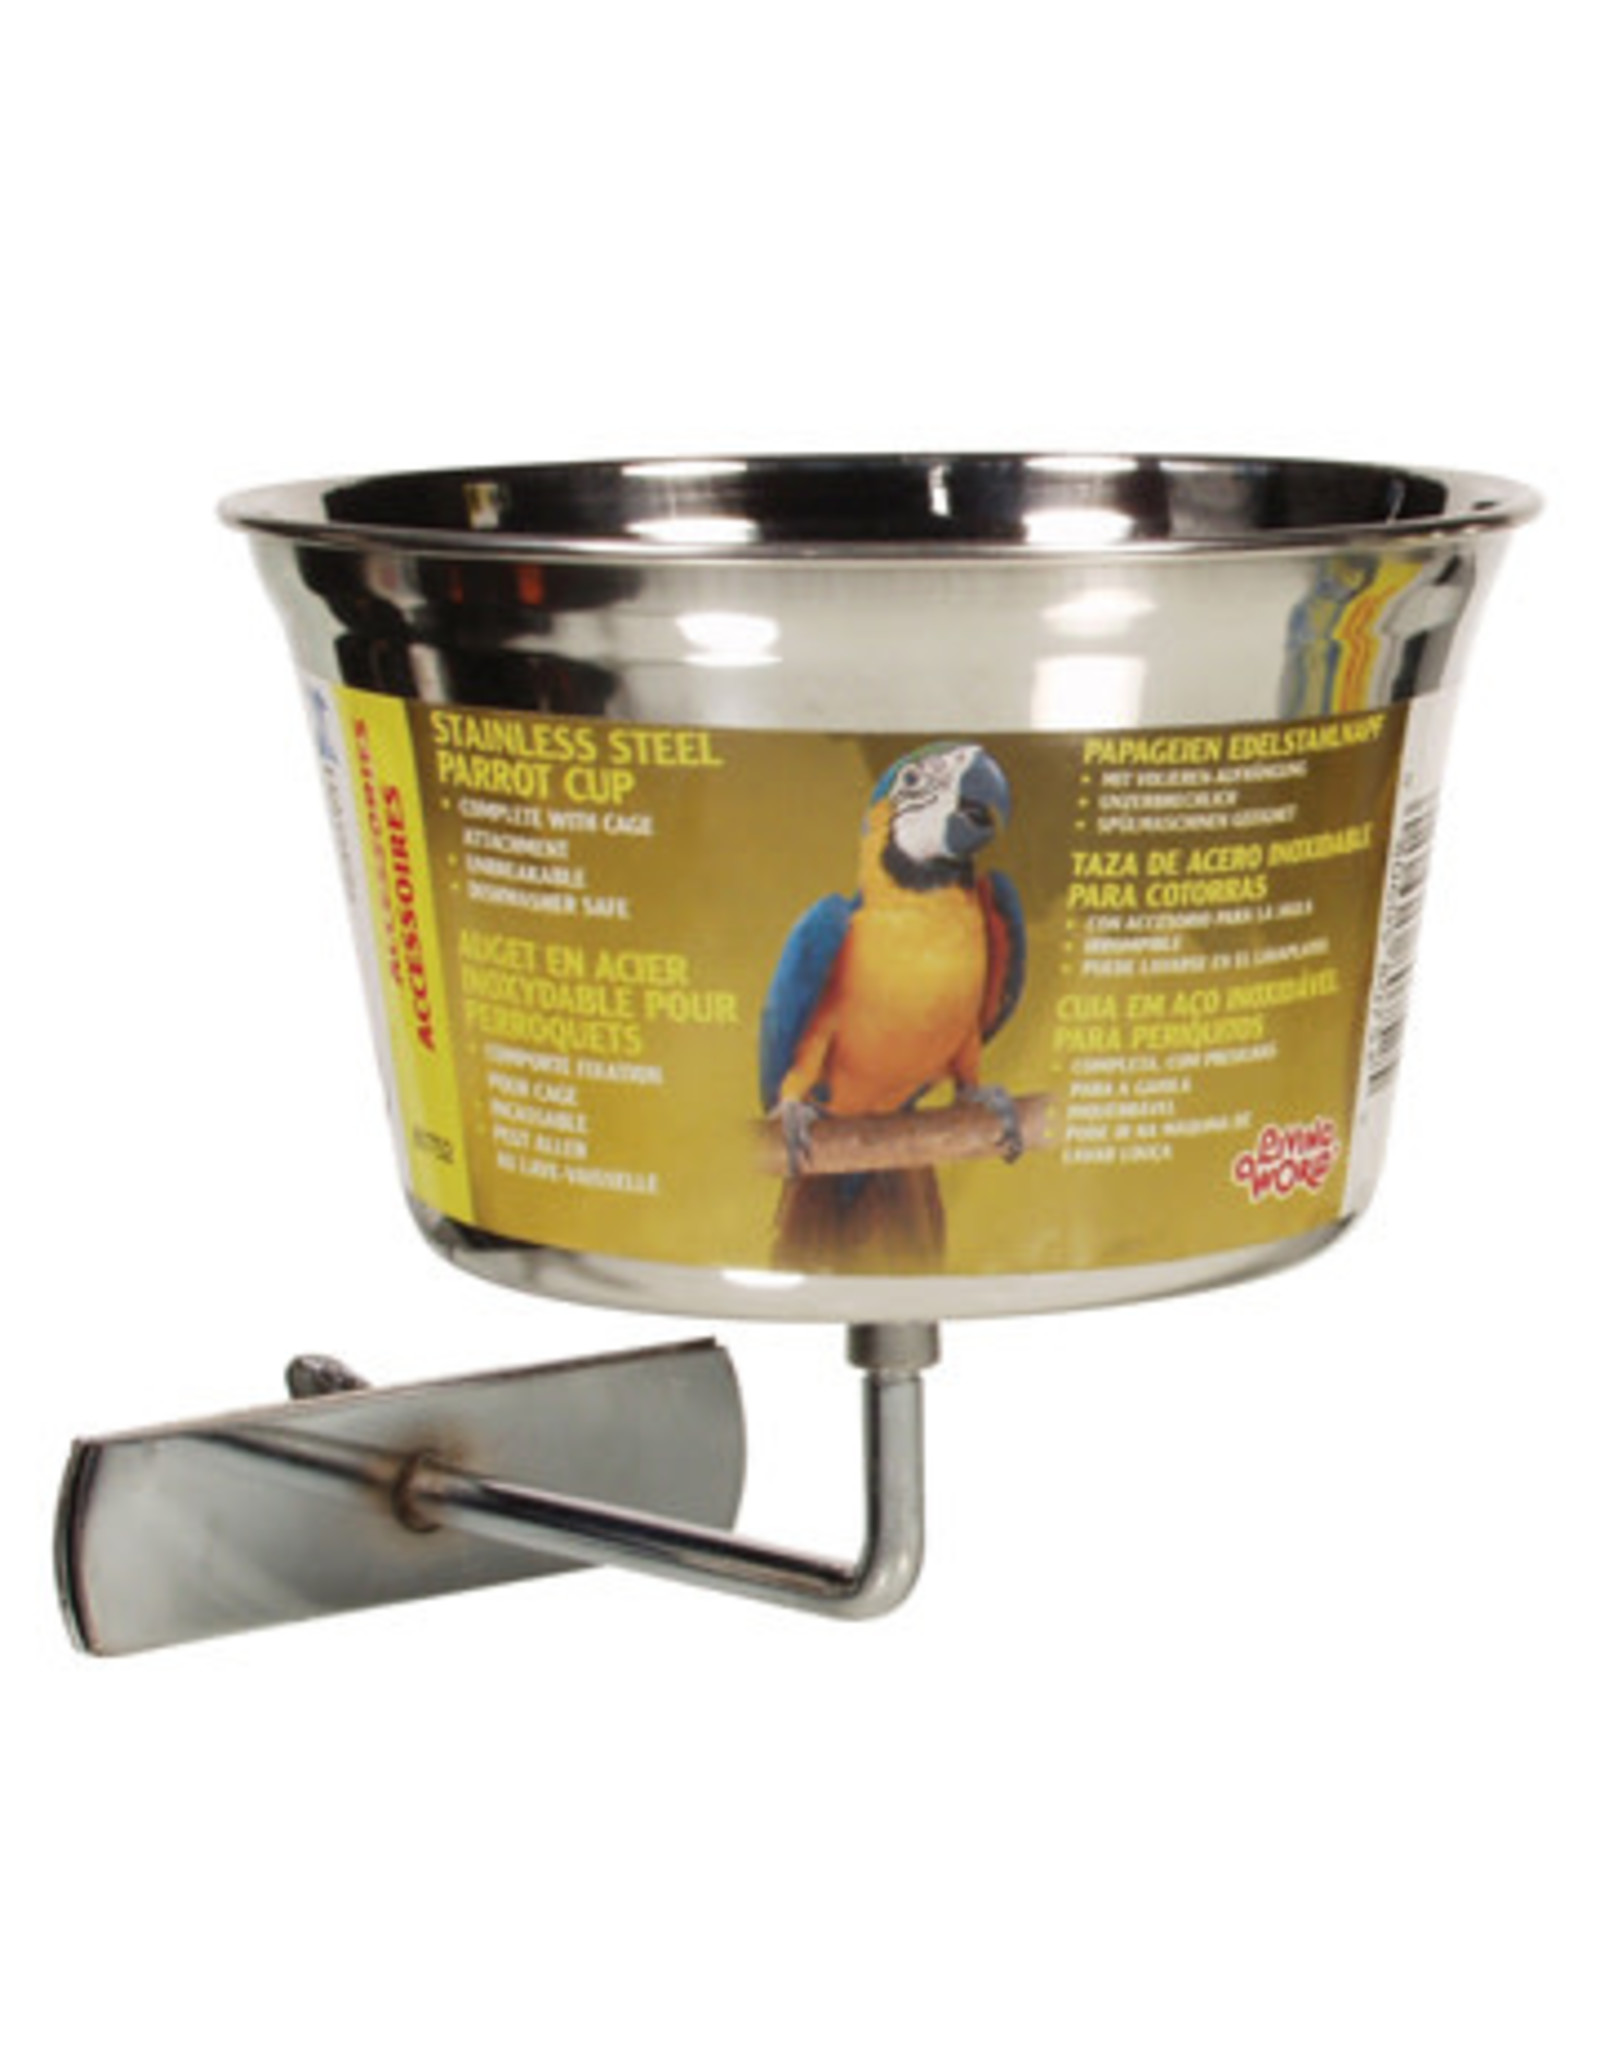 Living World Living World Stainless Steel Parrot Cup - Large - 960 ml (32 oz)